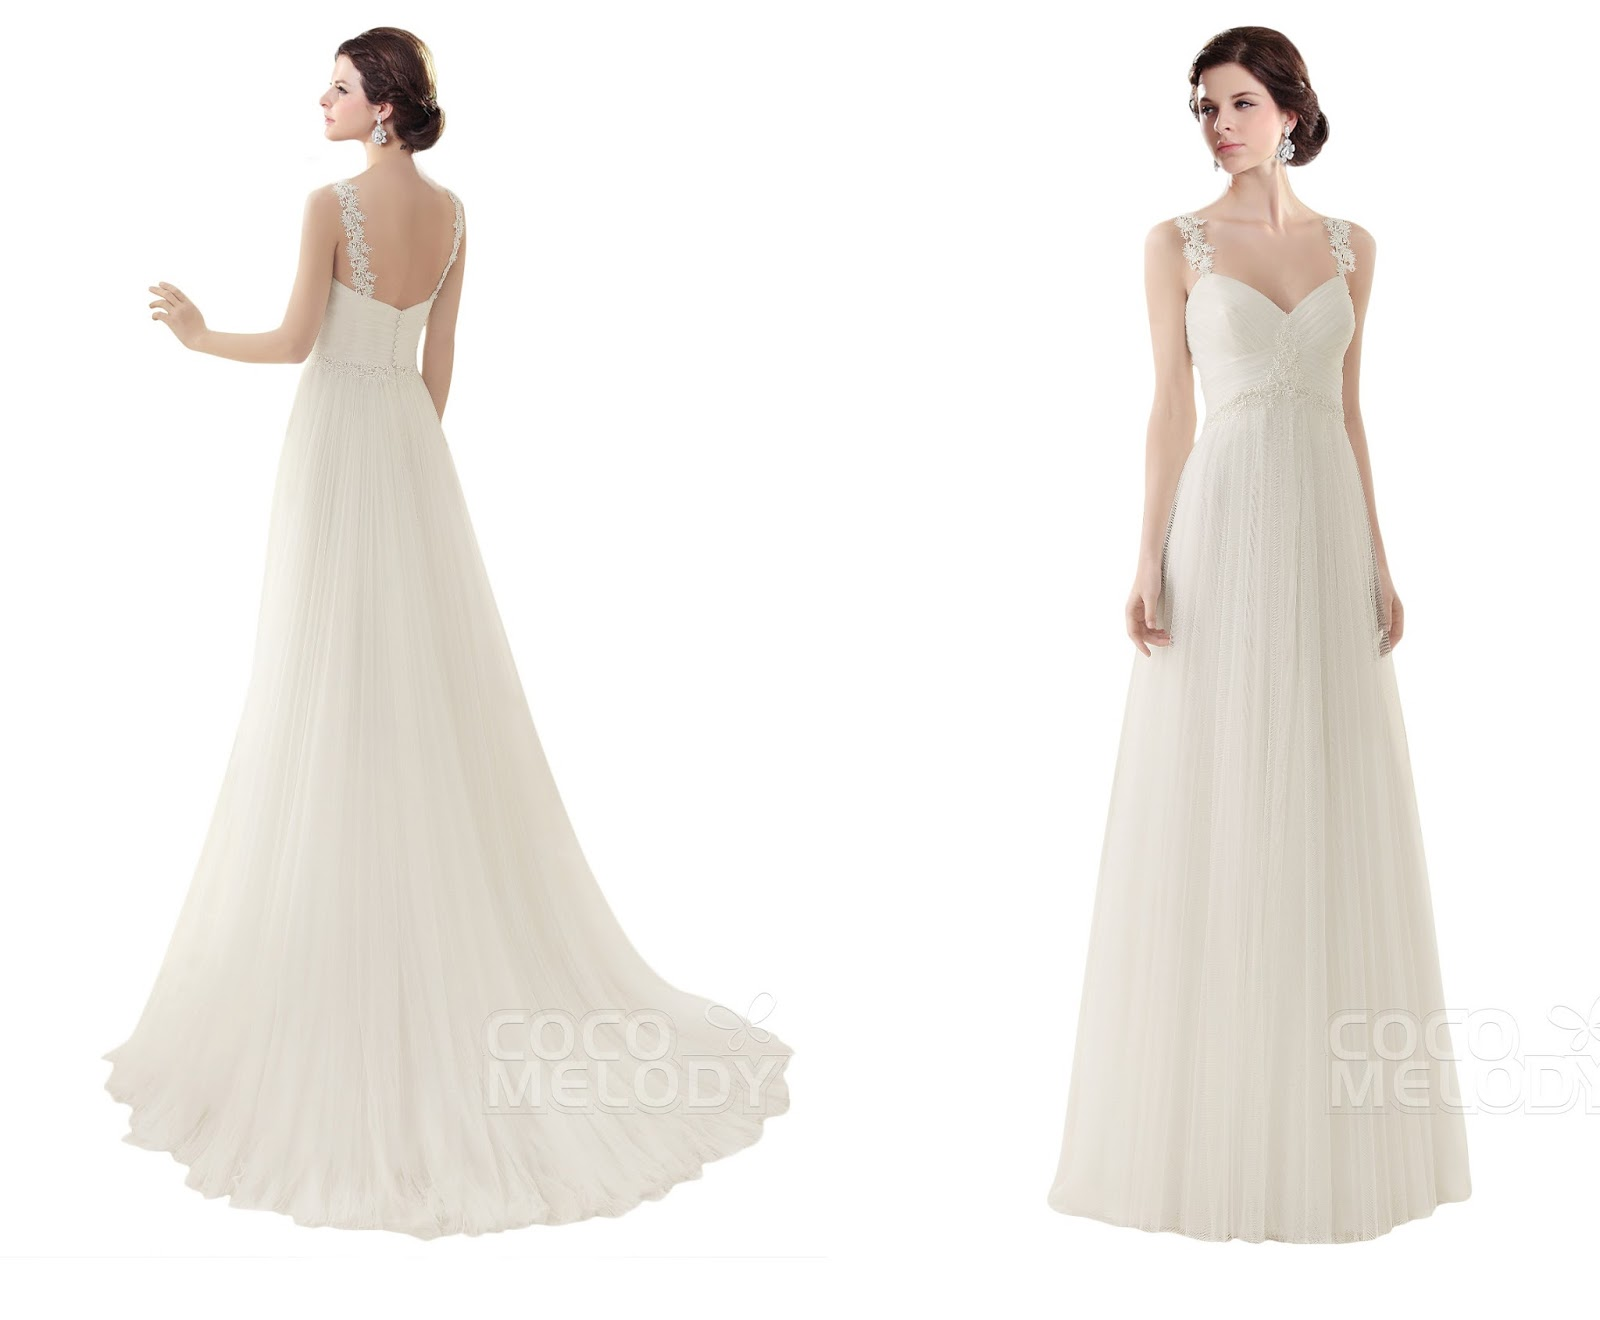 http://www.cocomelody.com/cute-a-line-spaghetti-strap-natural-train-tulle-ivory-sleeveless-zipper-wedding-dress-with-appliques-and-draped-cwzt1404a.html